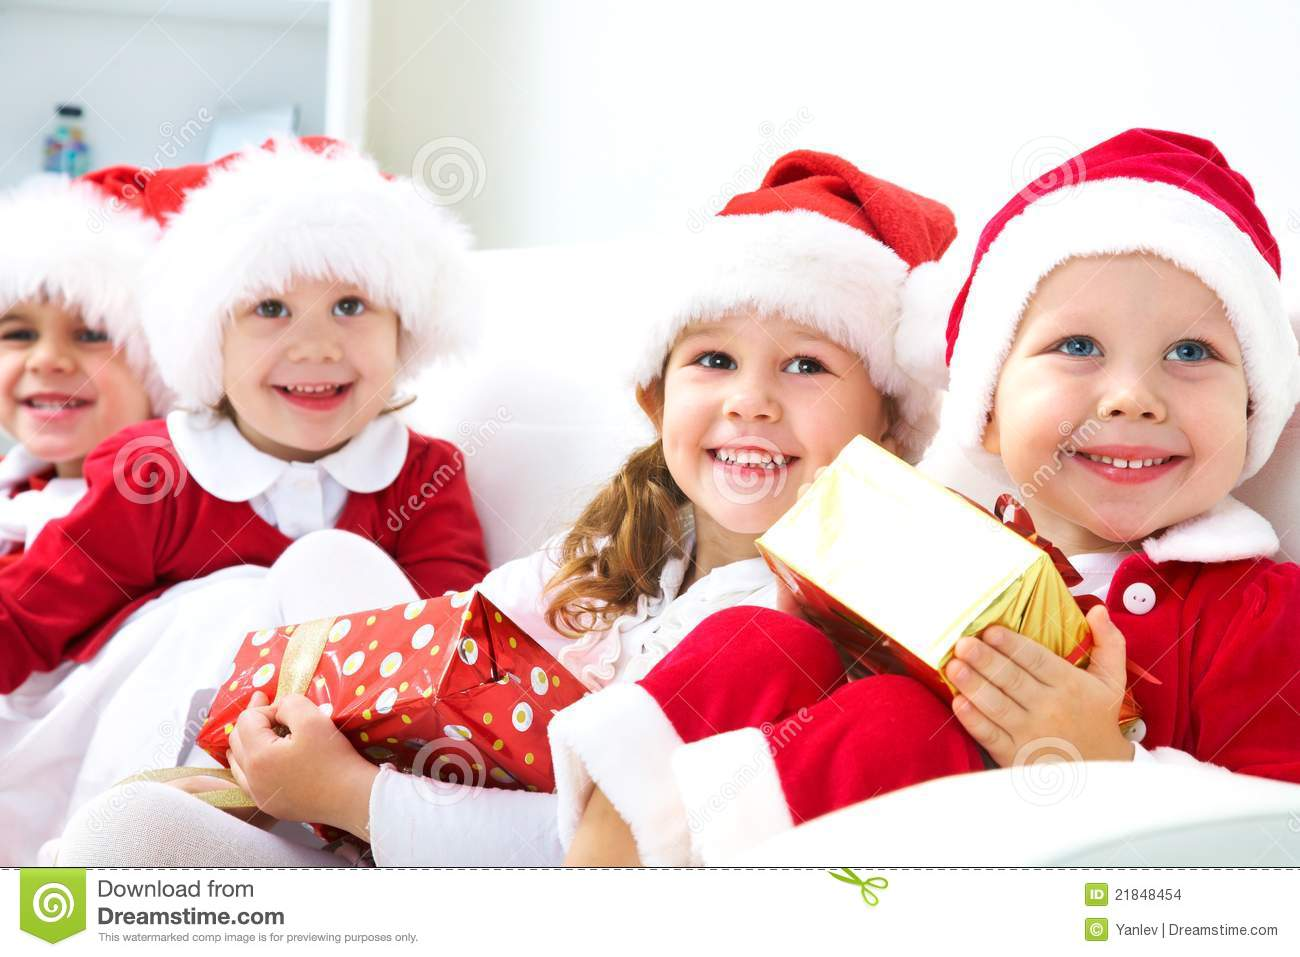 d81d11c591038 Funny christmas company stock photo. Image of little - 21848454